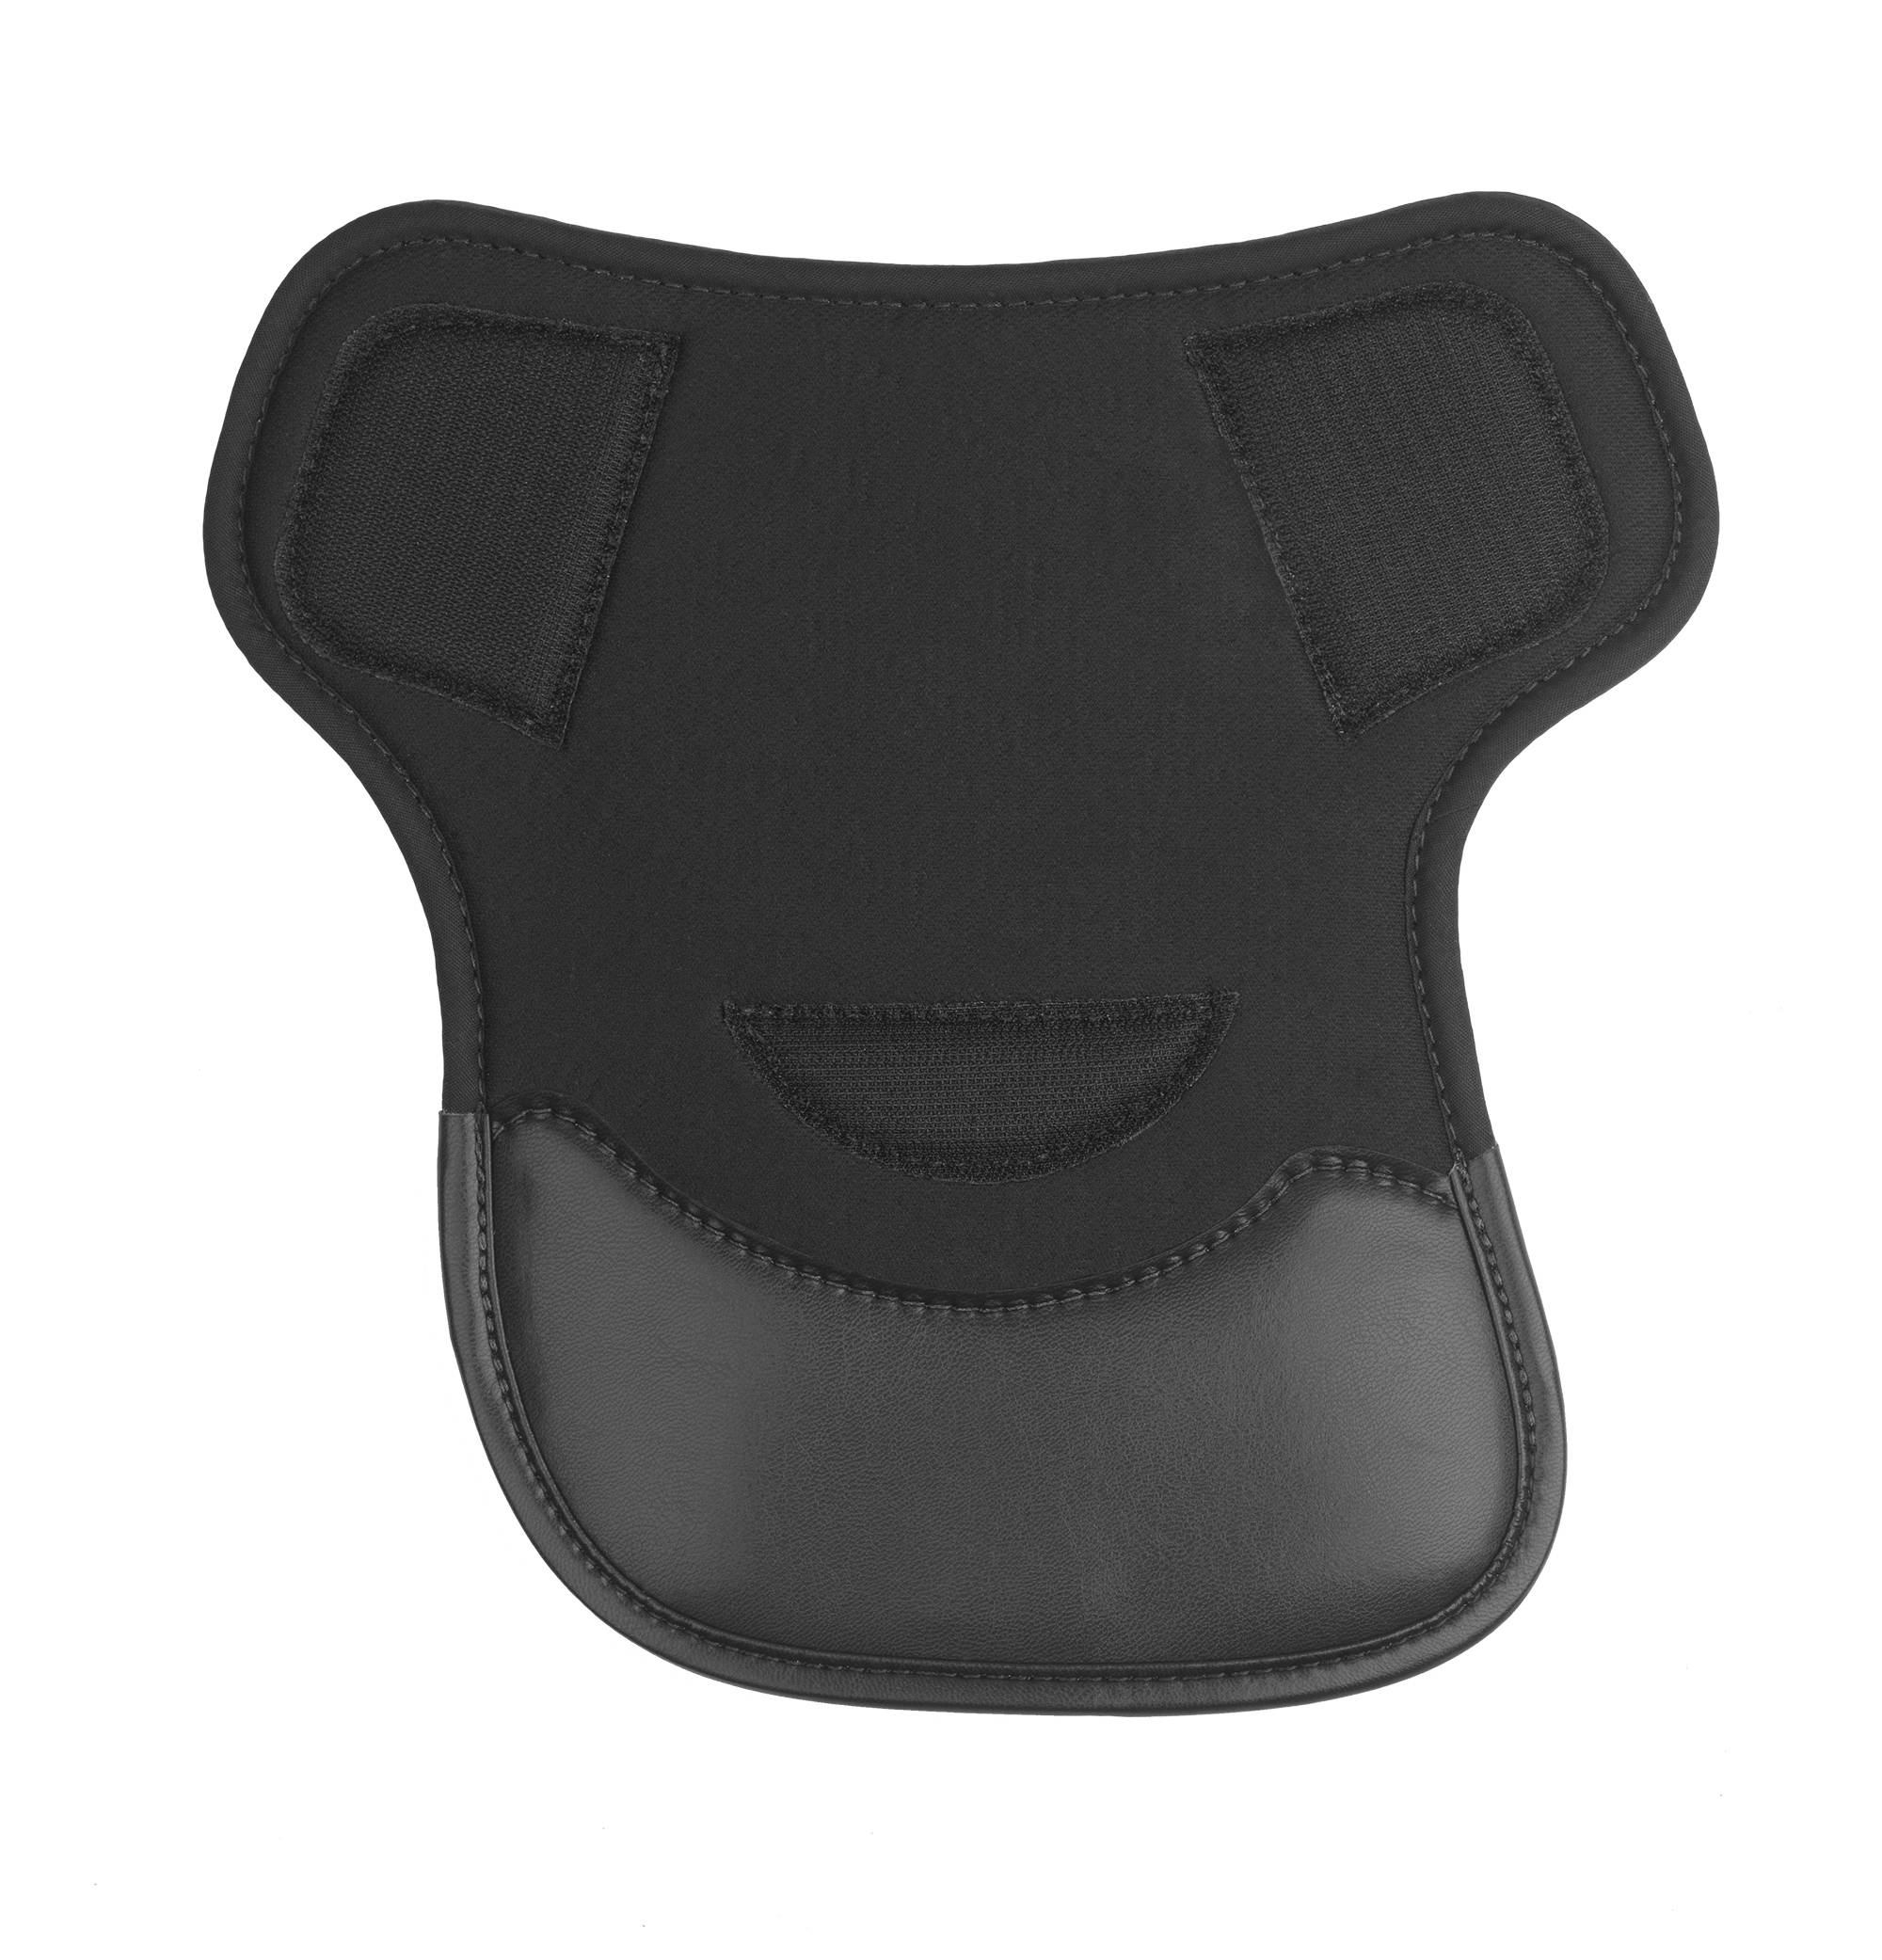 Equifit Replacement Impacteq Liners For Extended Hind Boots - Full Coverage